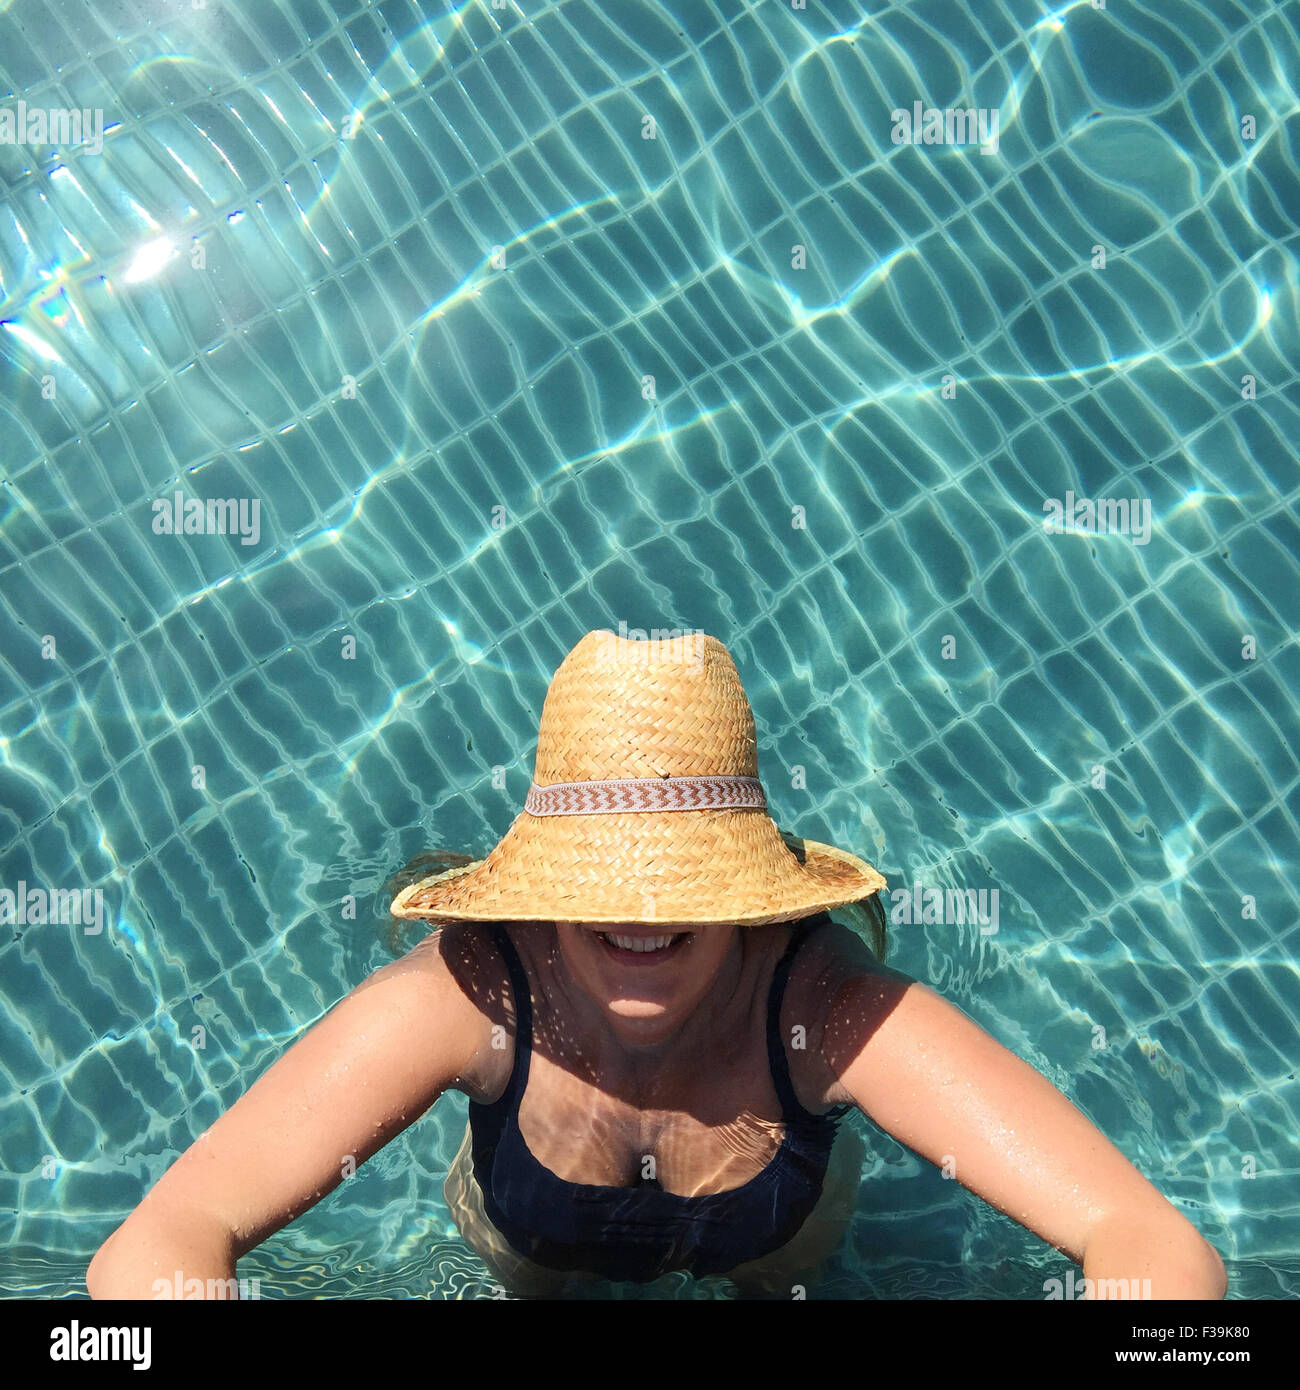 Woman standing in swimming pool looking up - Stock Image